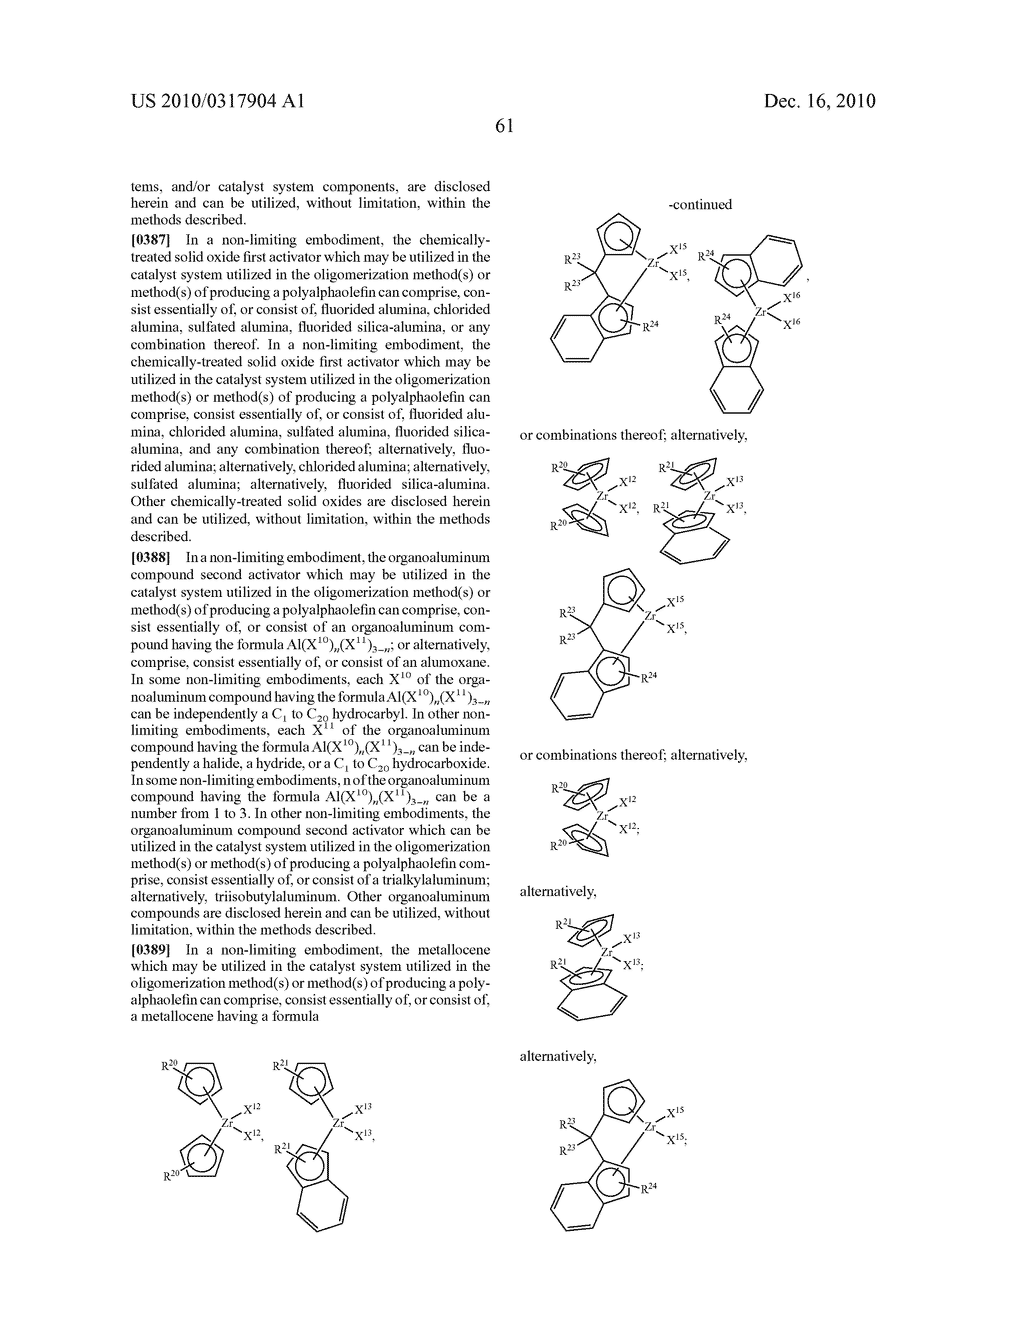 OLIGOMERIZATION OF ALPHA OLEFINS USING METALLOCENE-SSA CATALYST SYSTEMS AND USE OF THE RESULTANT POLYALPHAOLEFINS TO PREPARE LUBRICANT BLENDS - diagram, schematic, and image 73